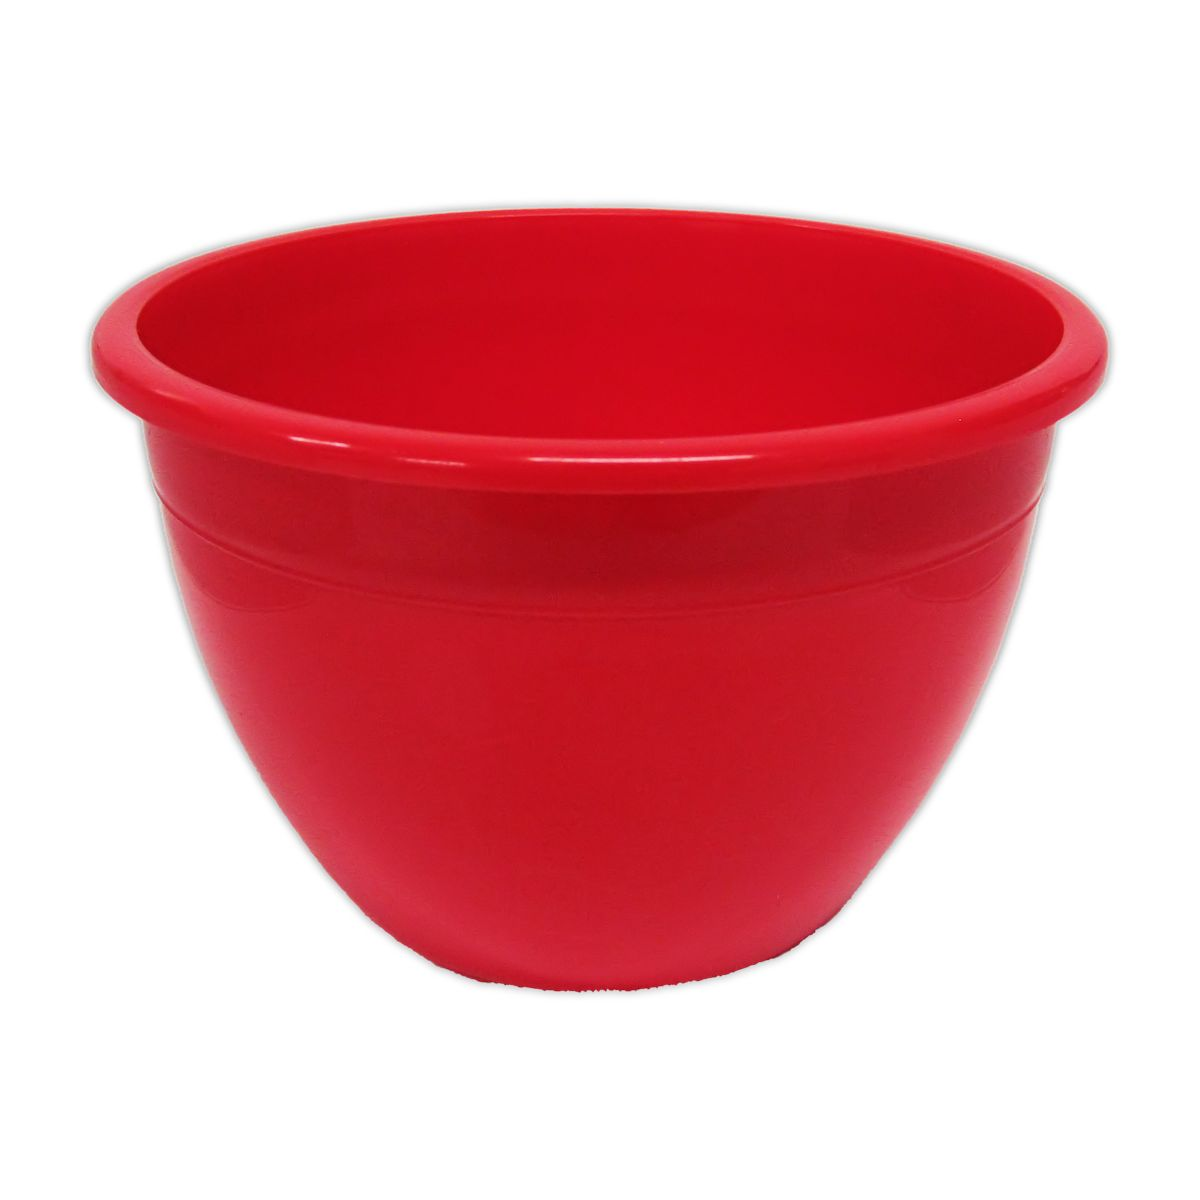 PUDB6623 - 2lb Red Pudding Bowl x 100